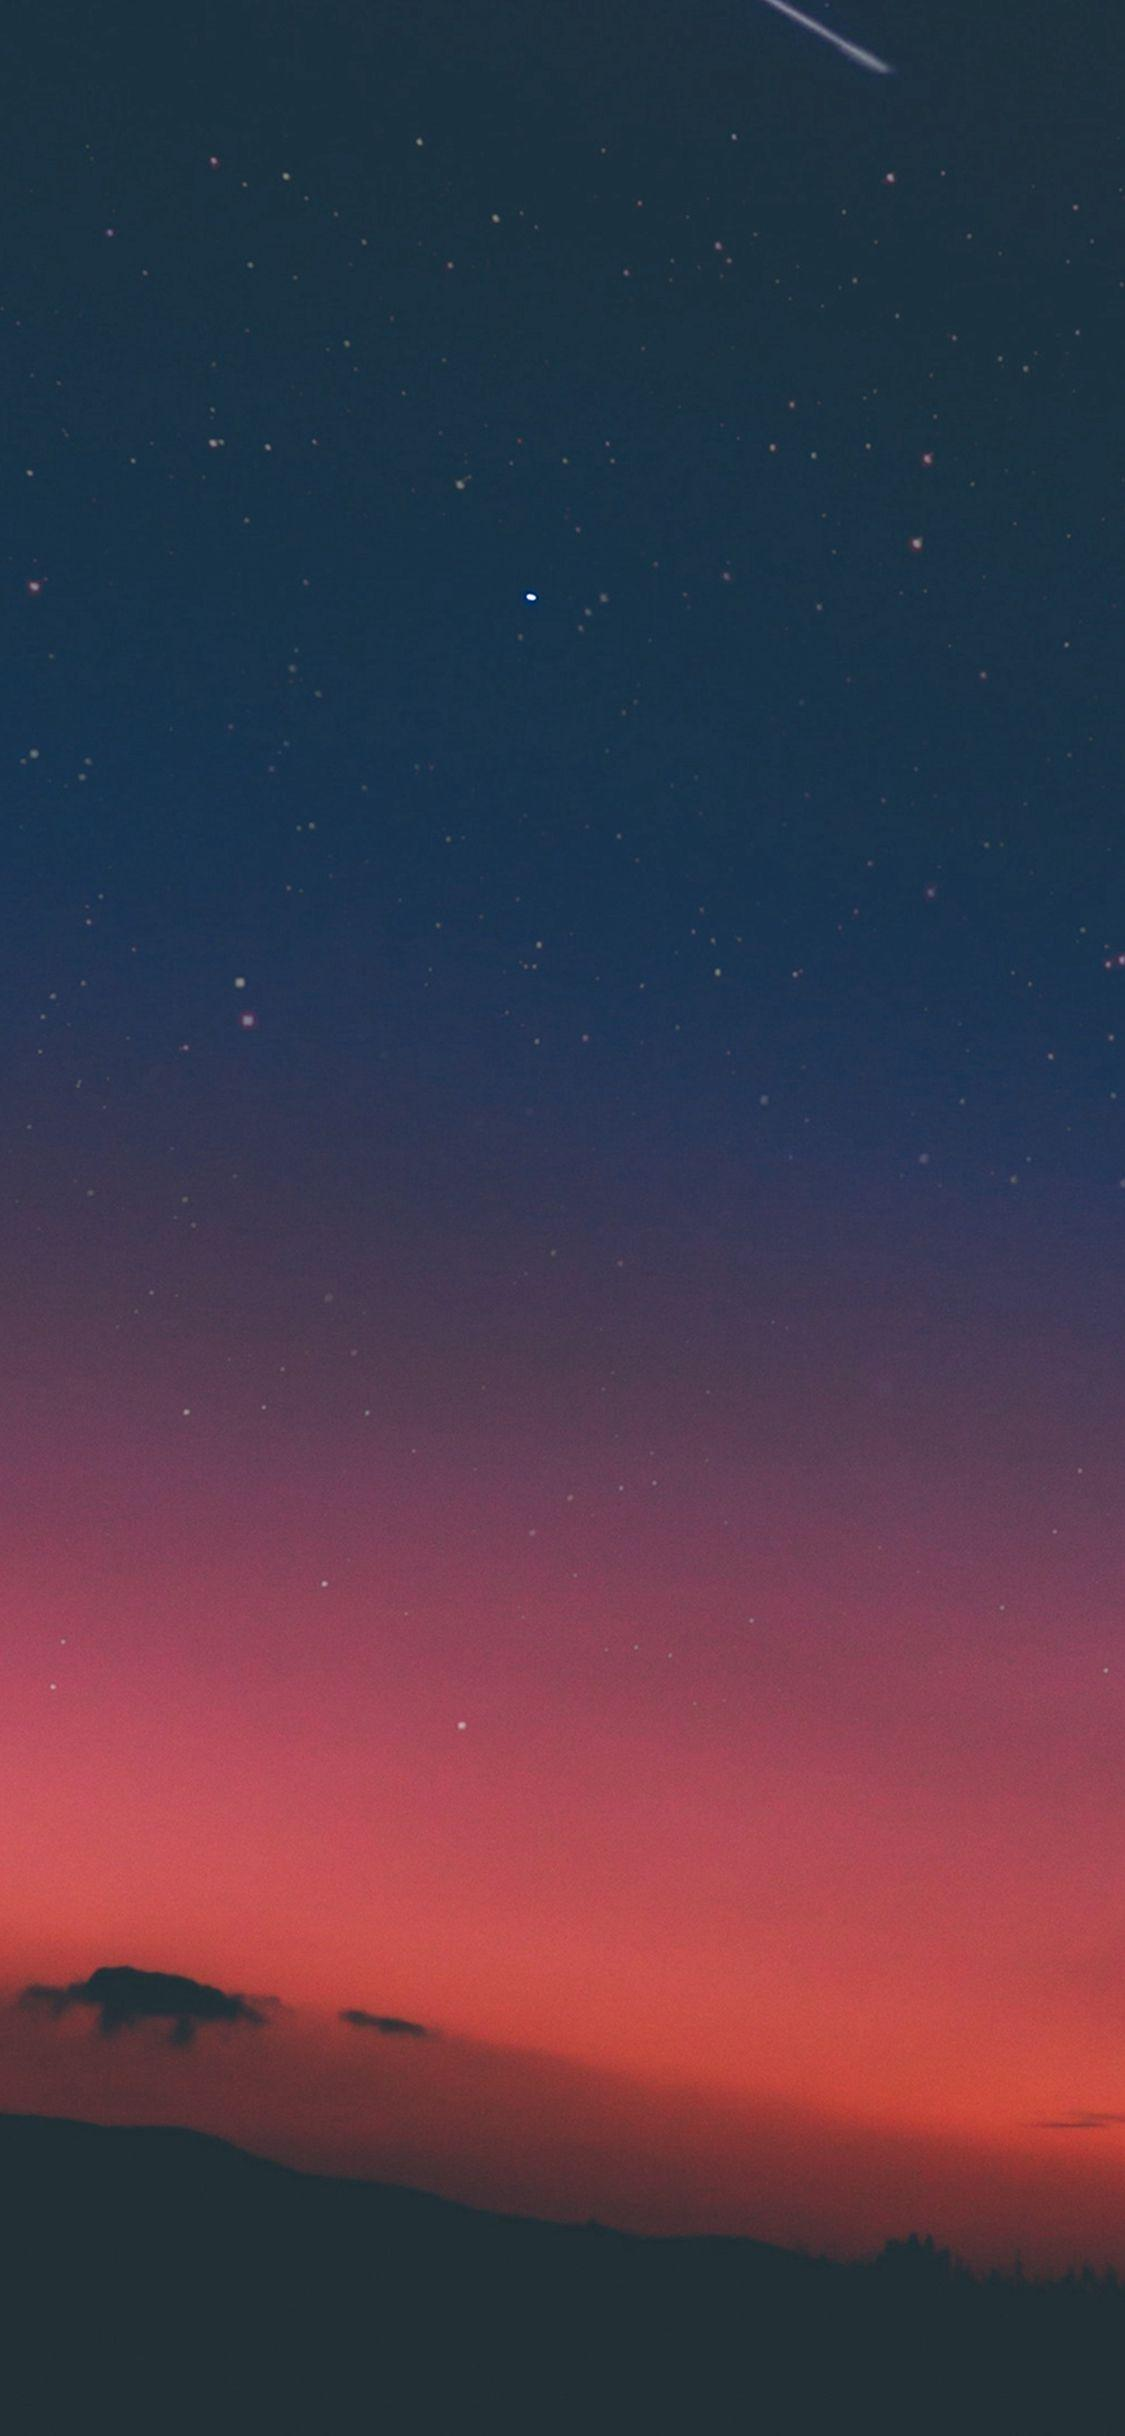 aesthetic iphone x wallpapers